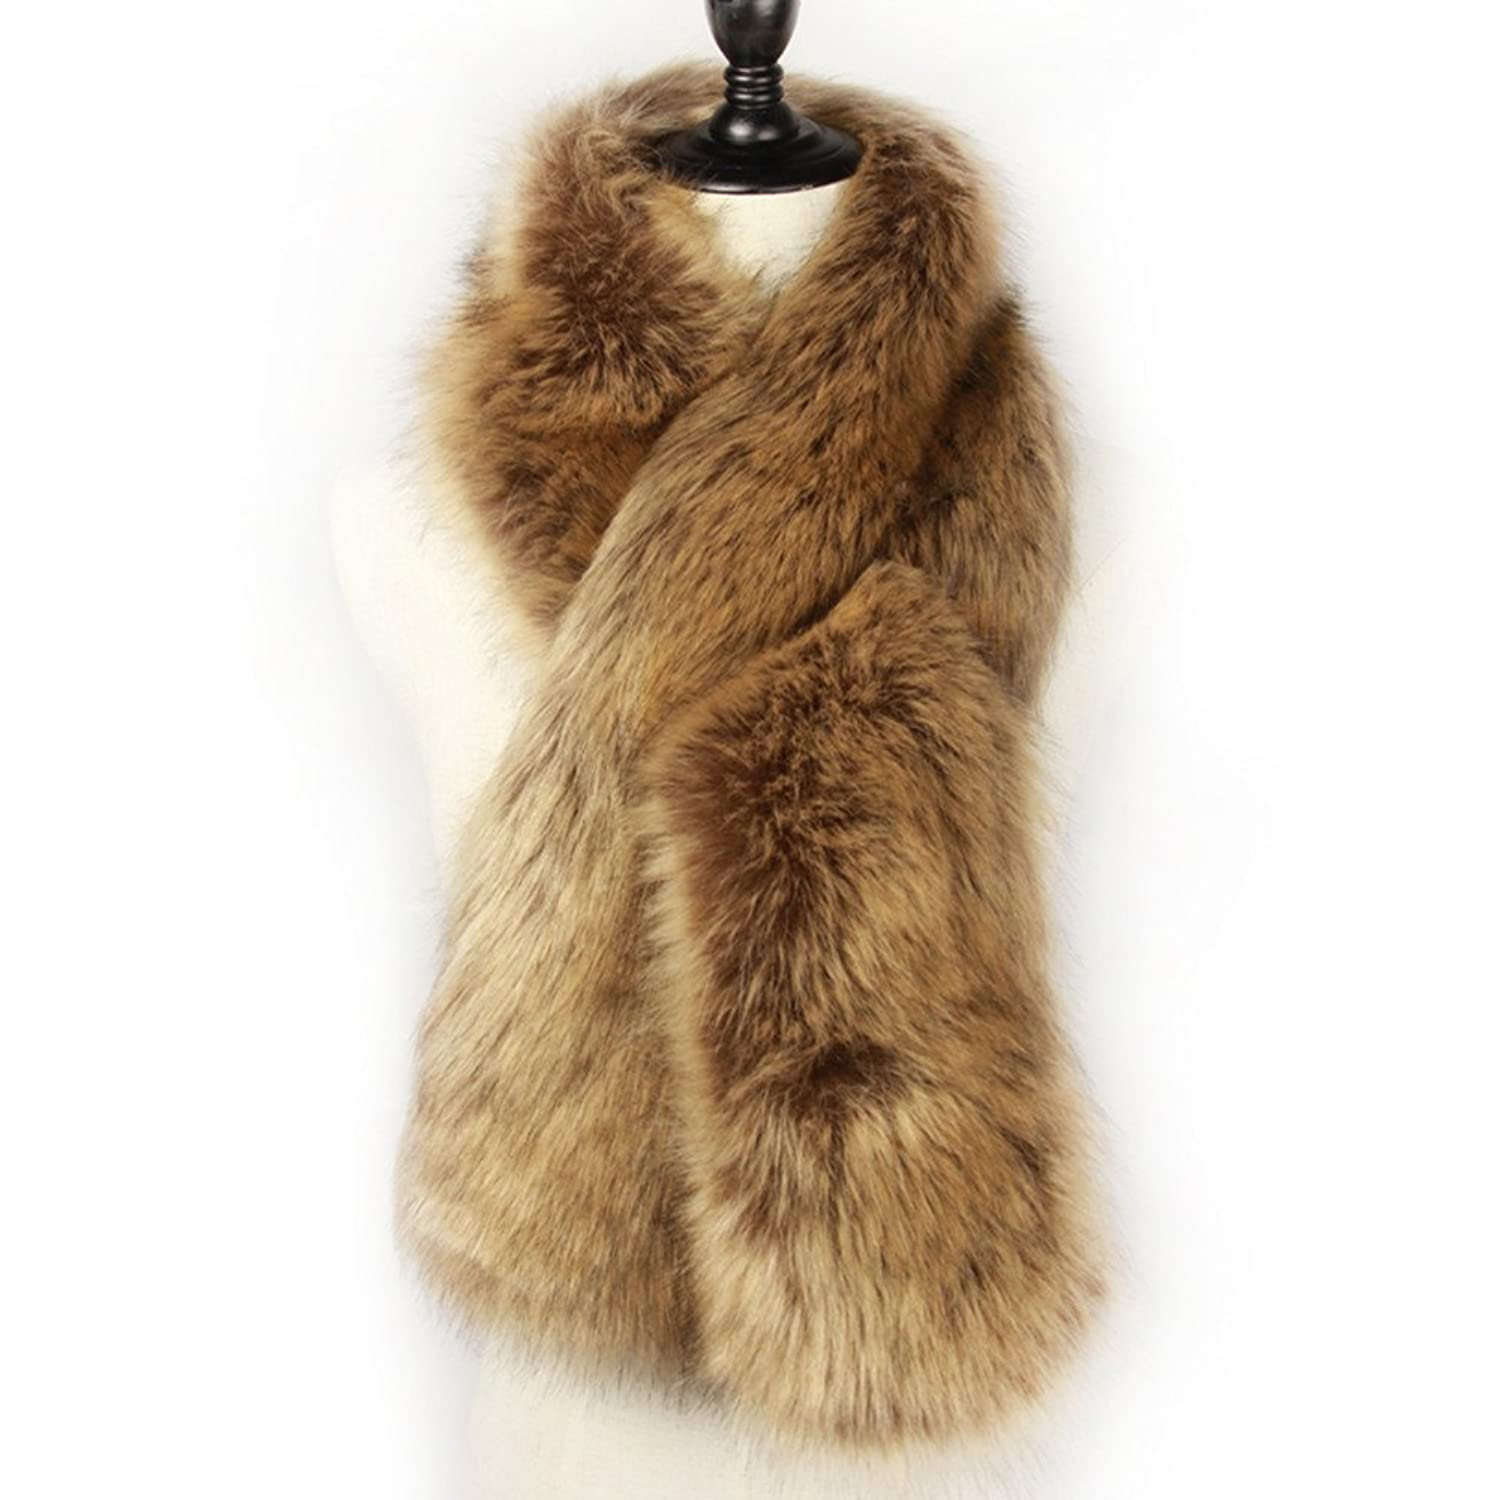 1950s Coats and Jackets History  Faux Fur Scarf Wrap Collar Shawl Shrug $15.99 AT vintagedancer.com